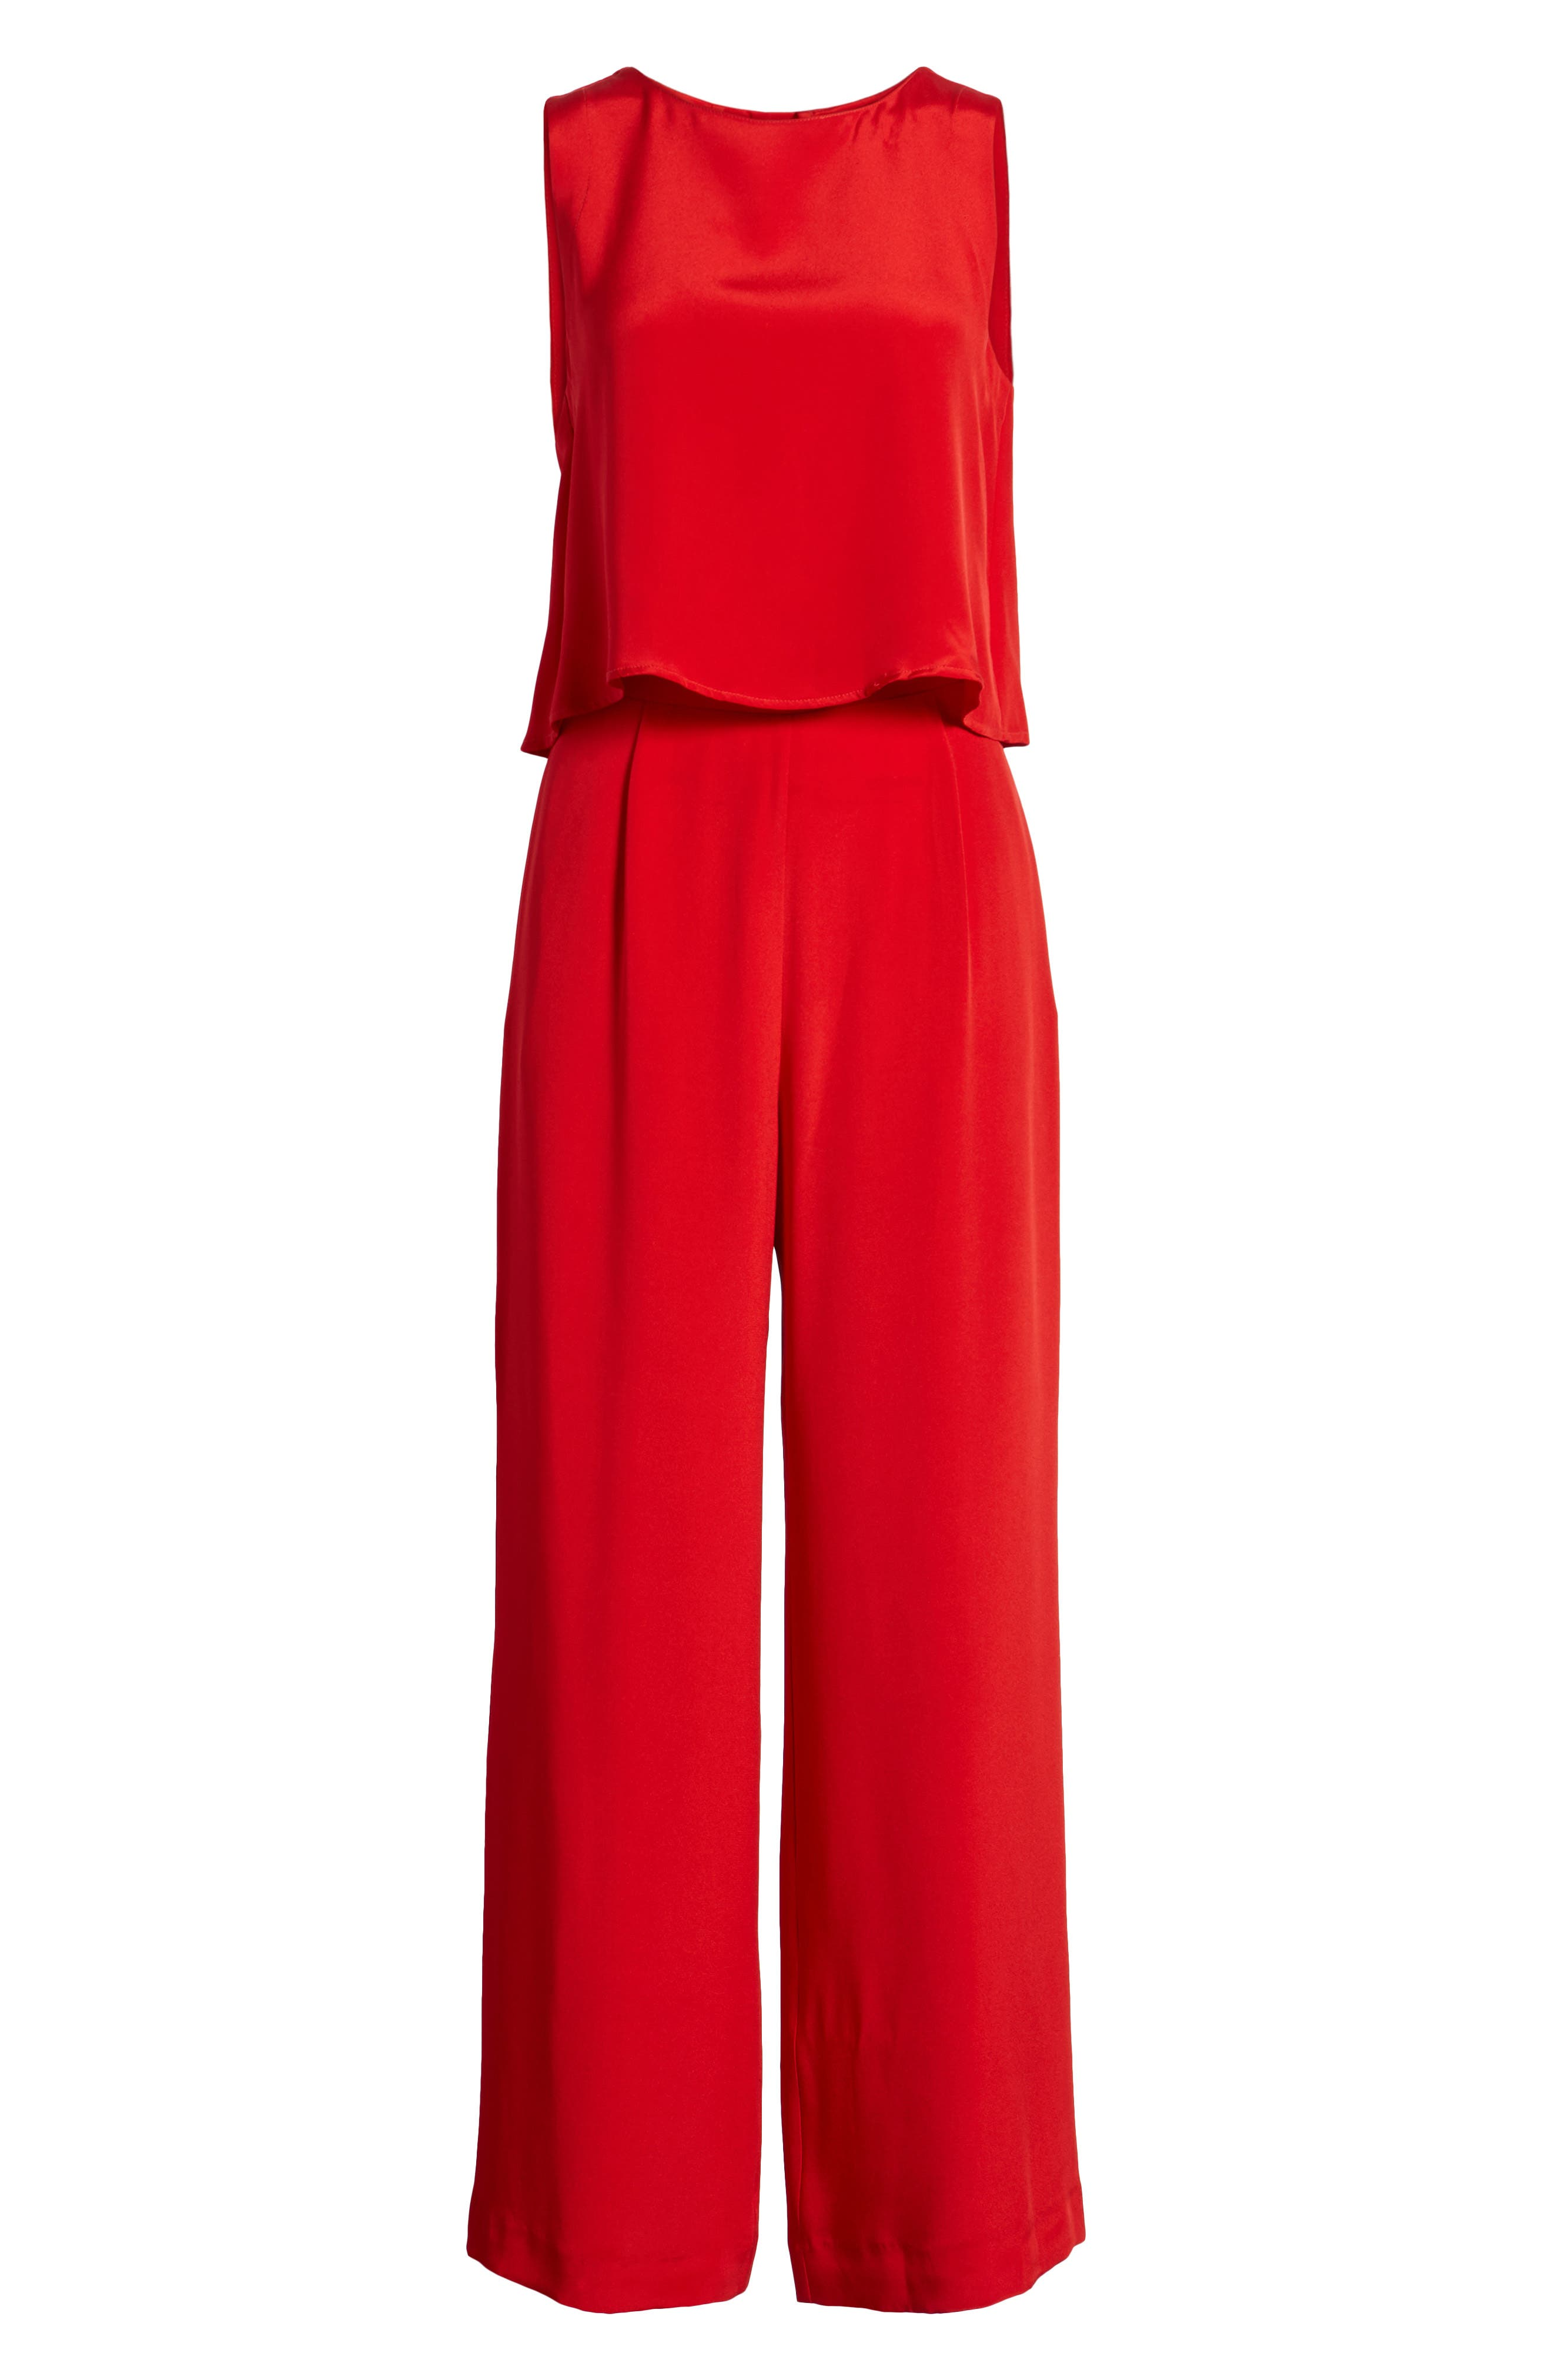 Urban Silky Top & Pants,                             Alternate thumbnail 6, color,                             Red